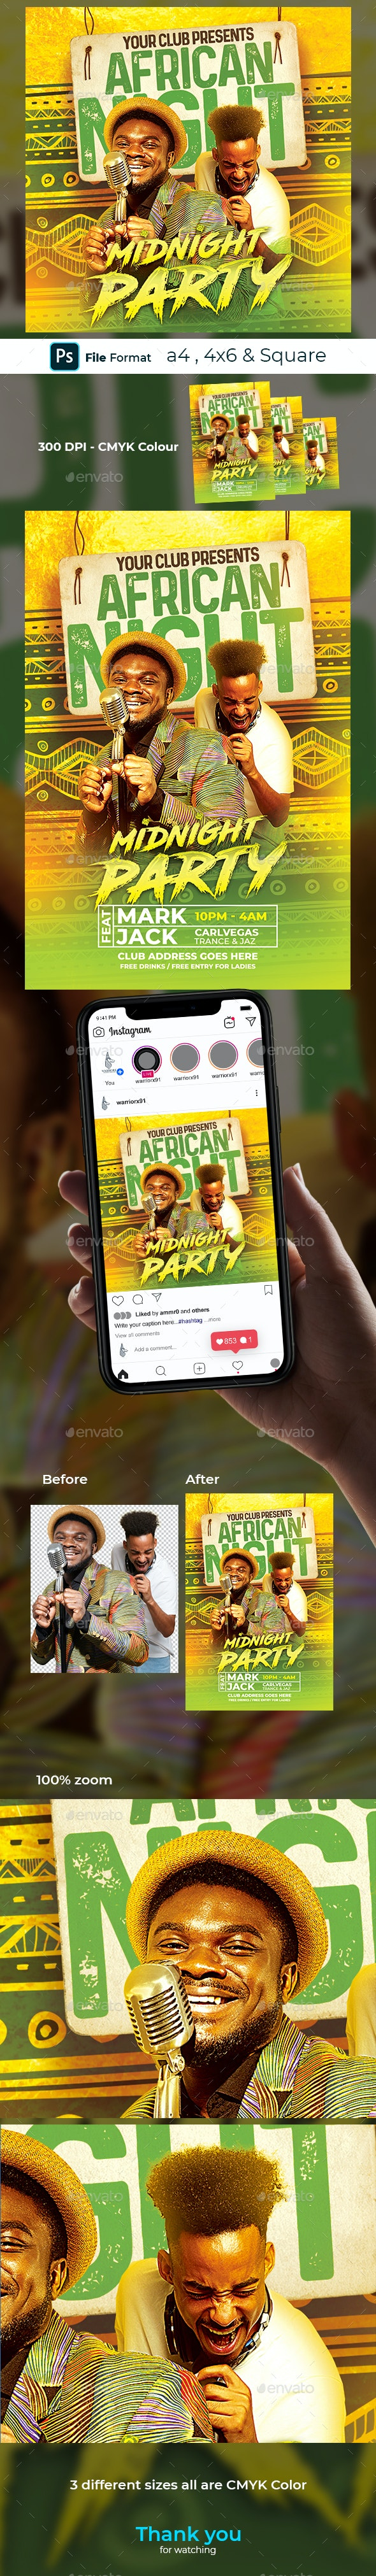 African Party Flyer - Clubs & Parties Events